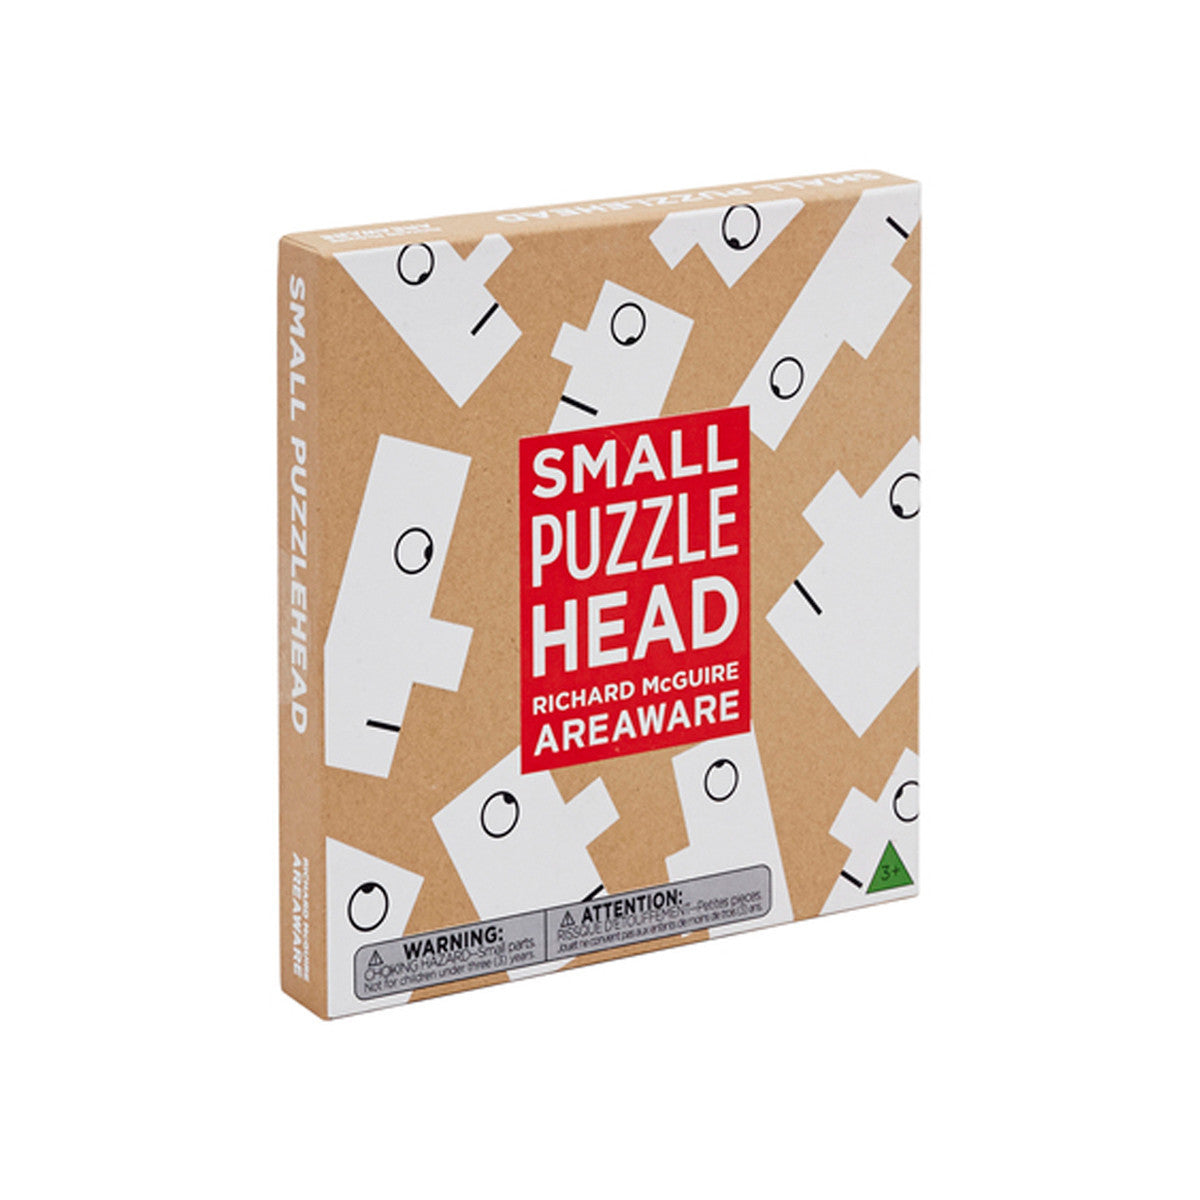 Areaware Puzzlehead Small Jigsaw Puzzle